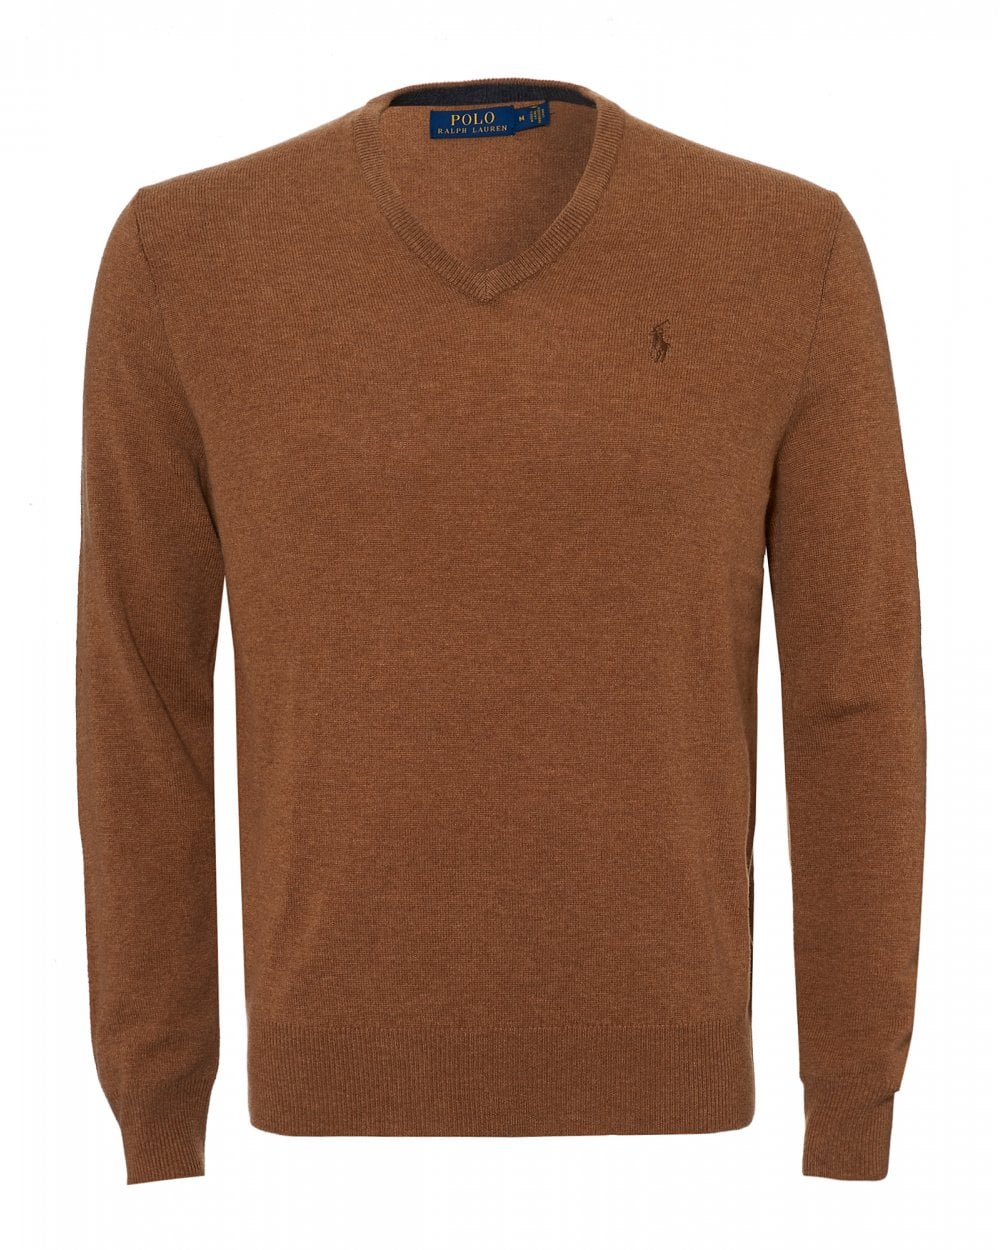 aa48ff737c Mens V Neck Jumper, Brown Heather Lambswool Knit